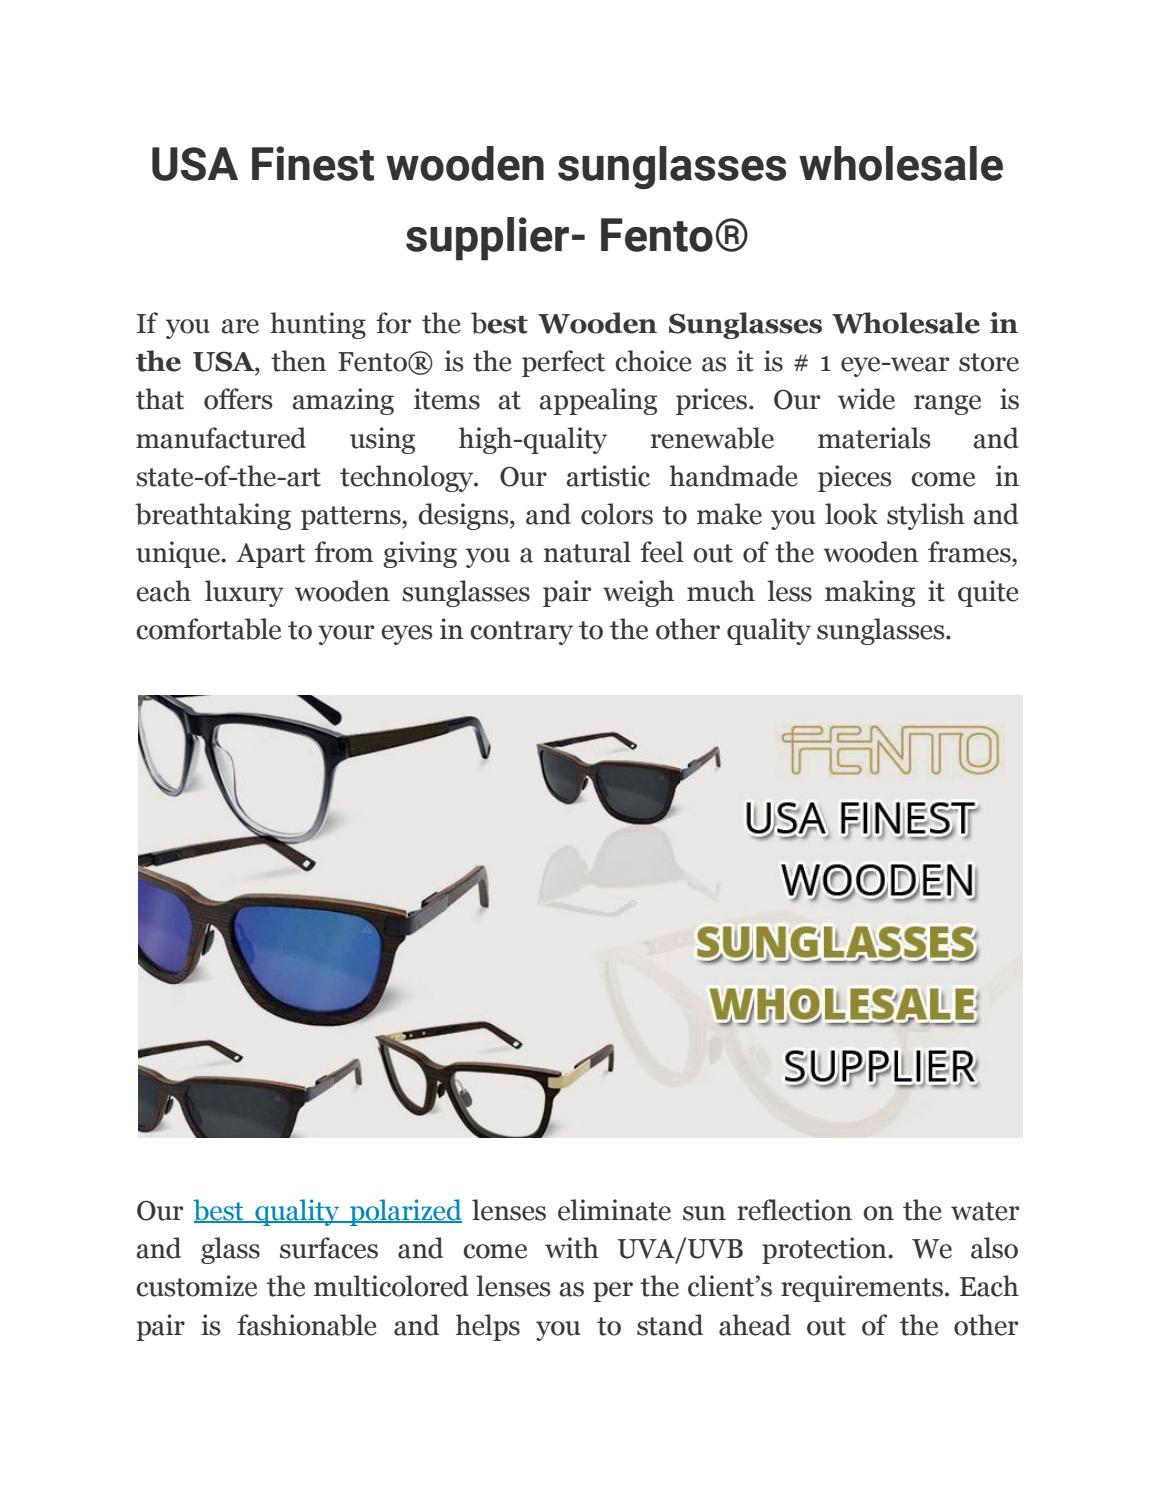 d920c4da02 Usa finest wooden sunglasses wholesale supplier fento® by fentoshop - issuu